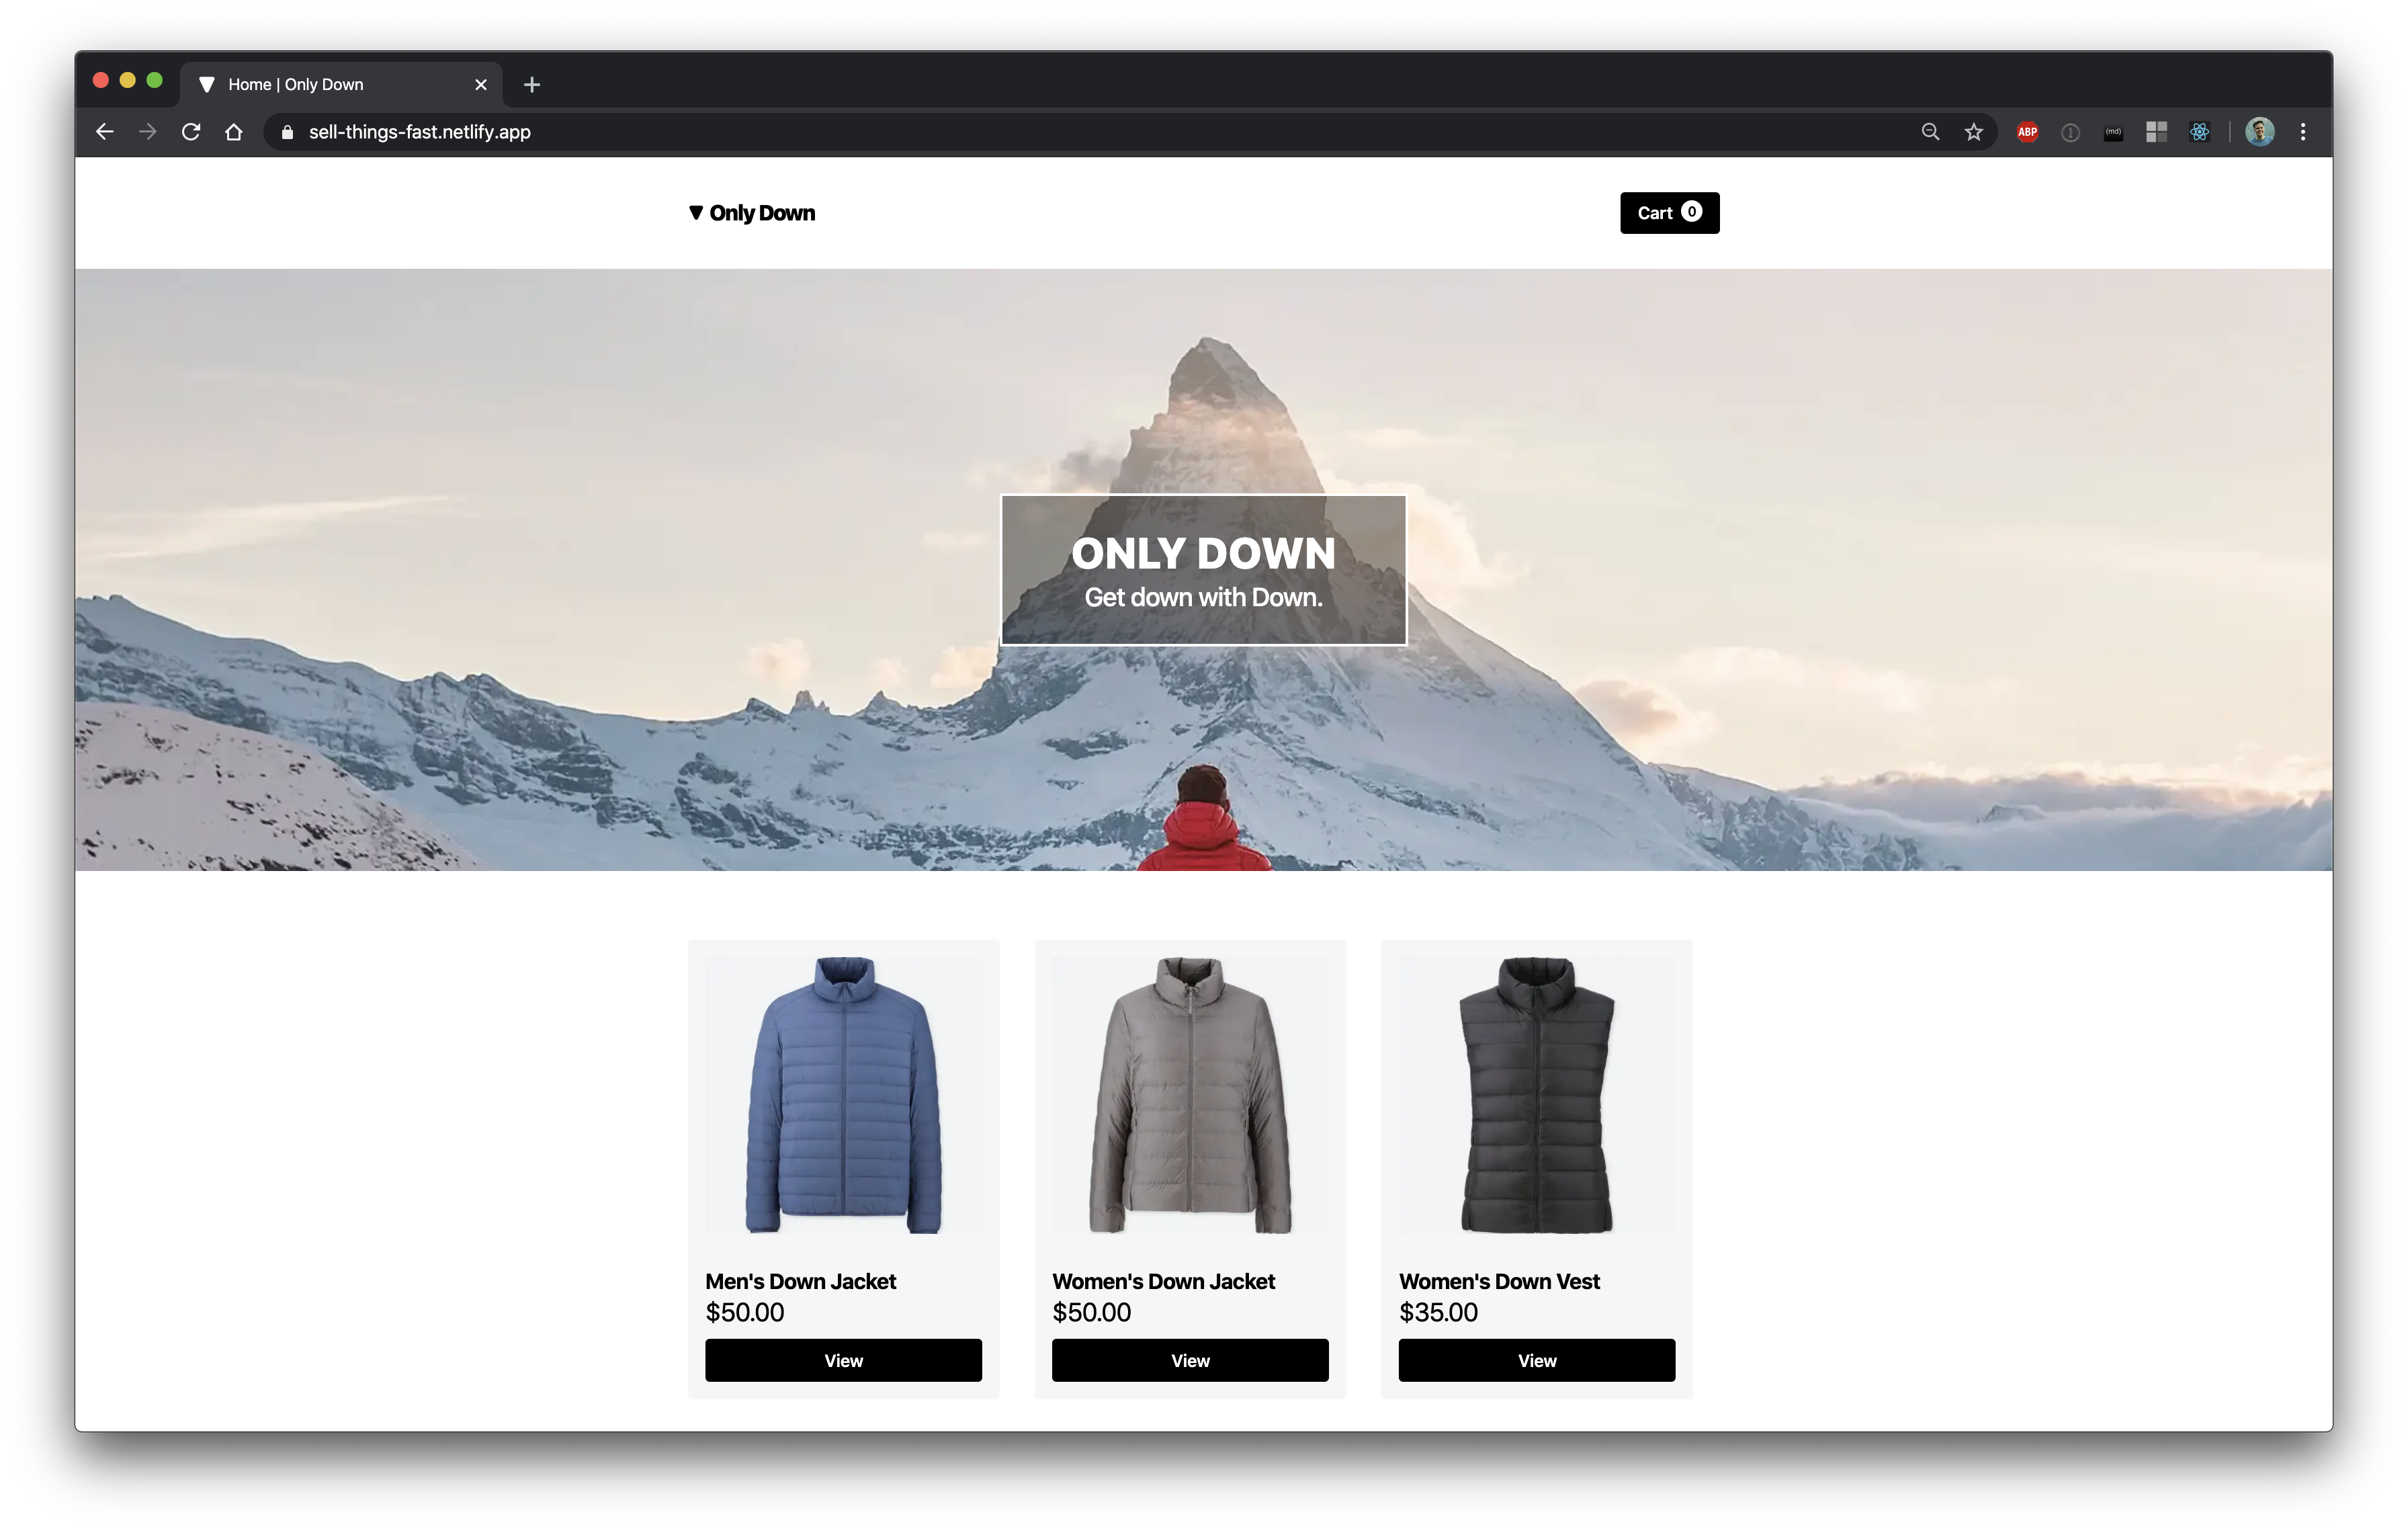 A screenshot of the homepage of Only Down showing an image of a mountain with the words Only Down over it, and three down-related products (two jackets and a vest)